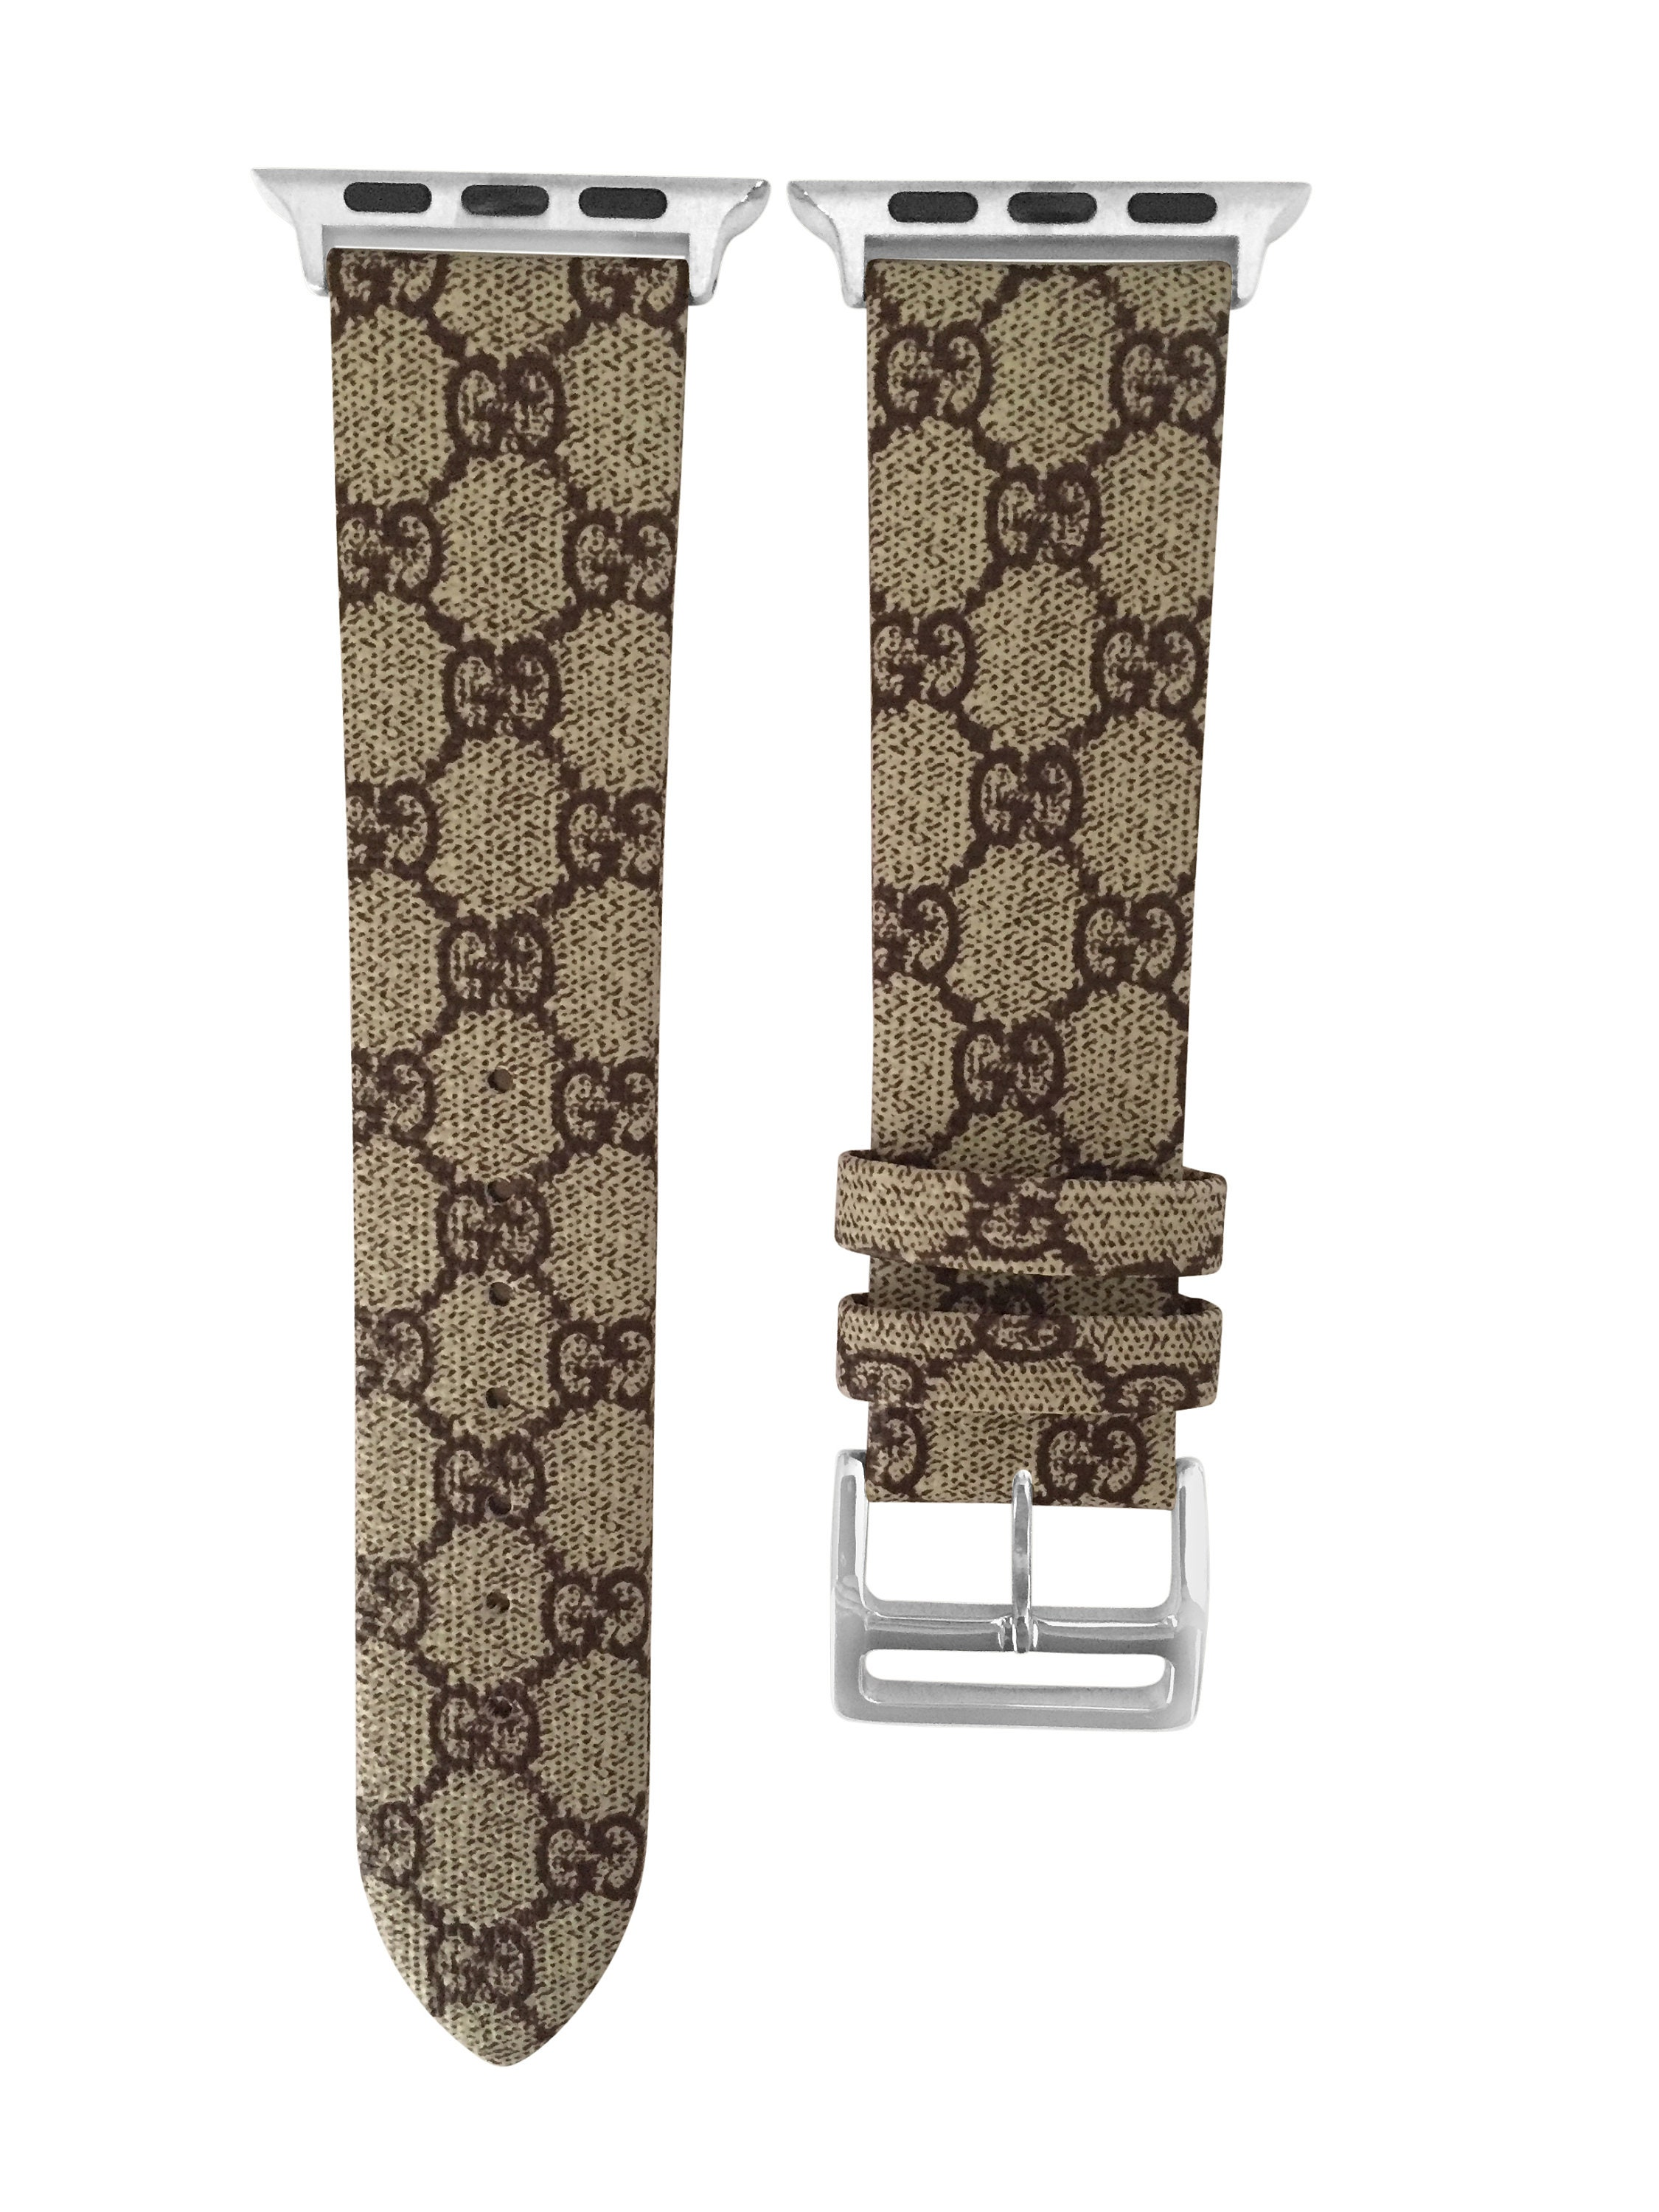 d062868d639 Re-purposed Handmade Gucci for Apple Watch Replacement Band